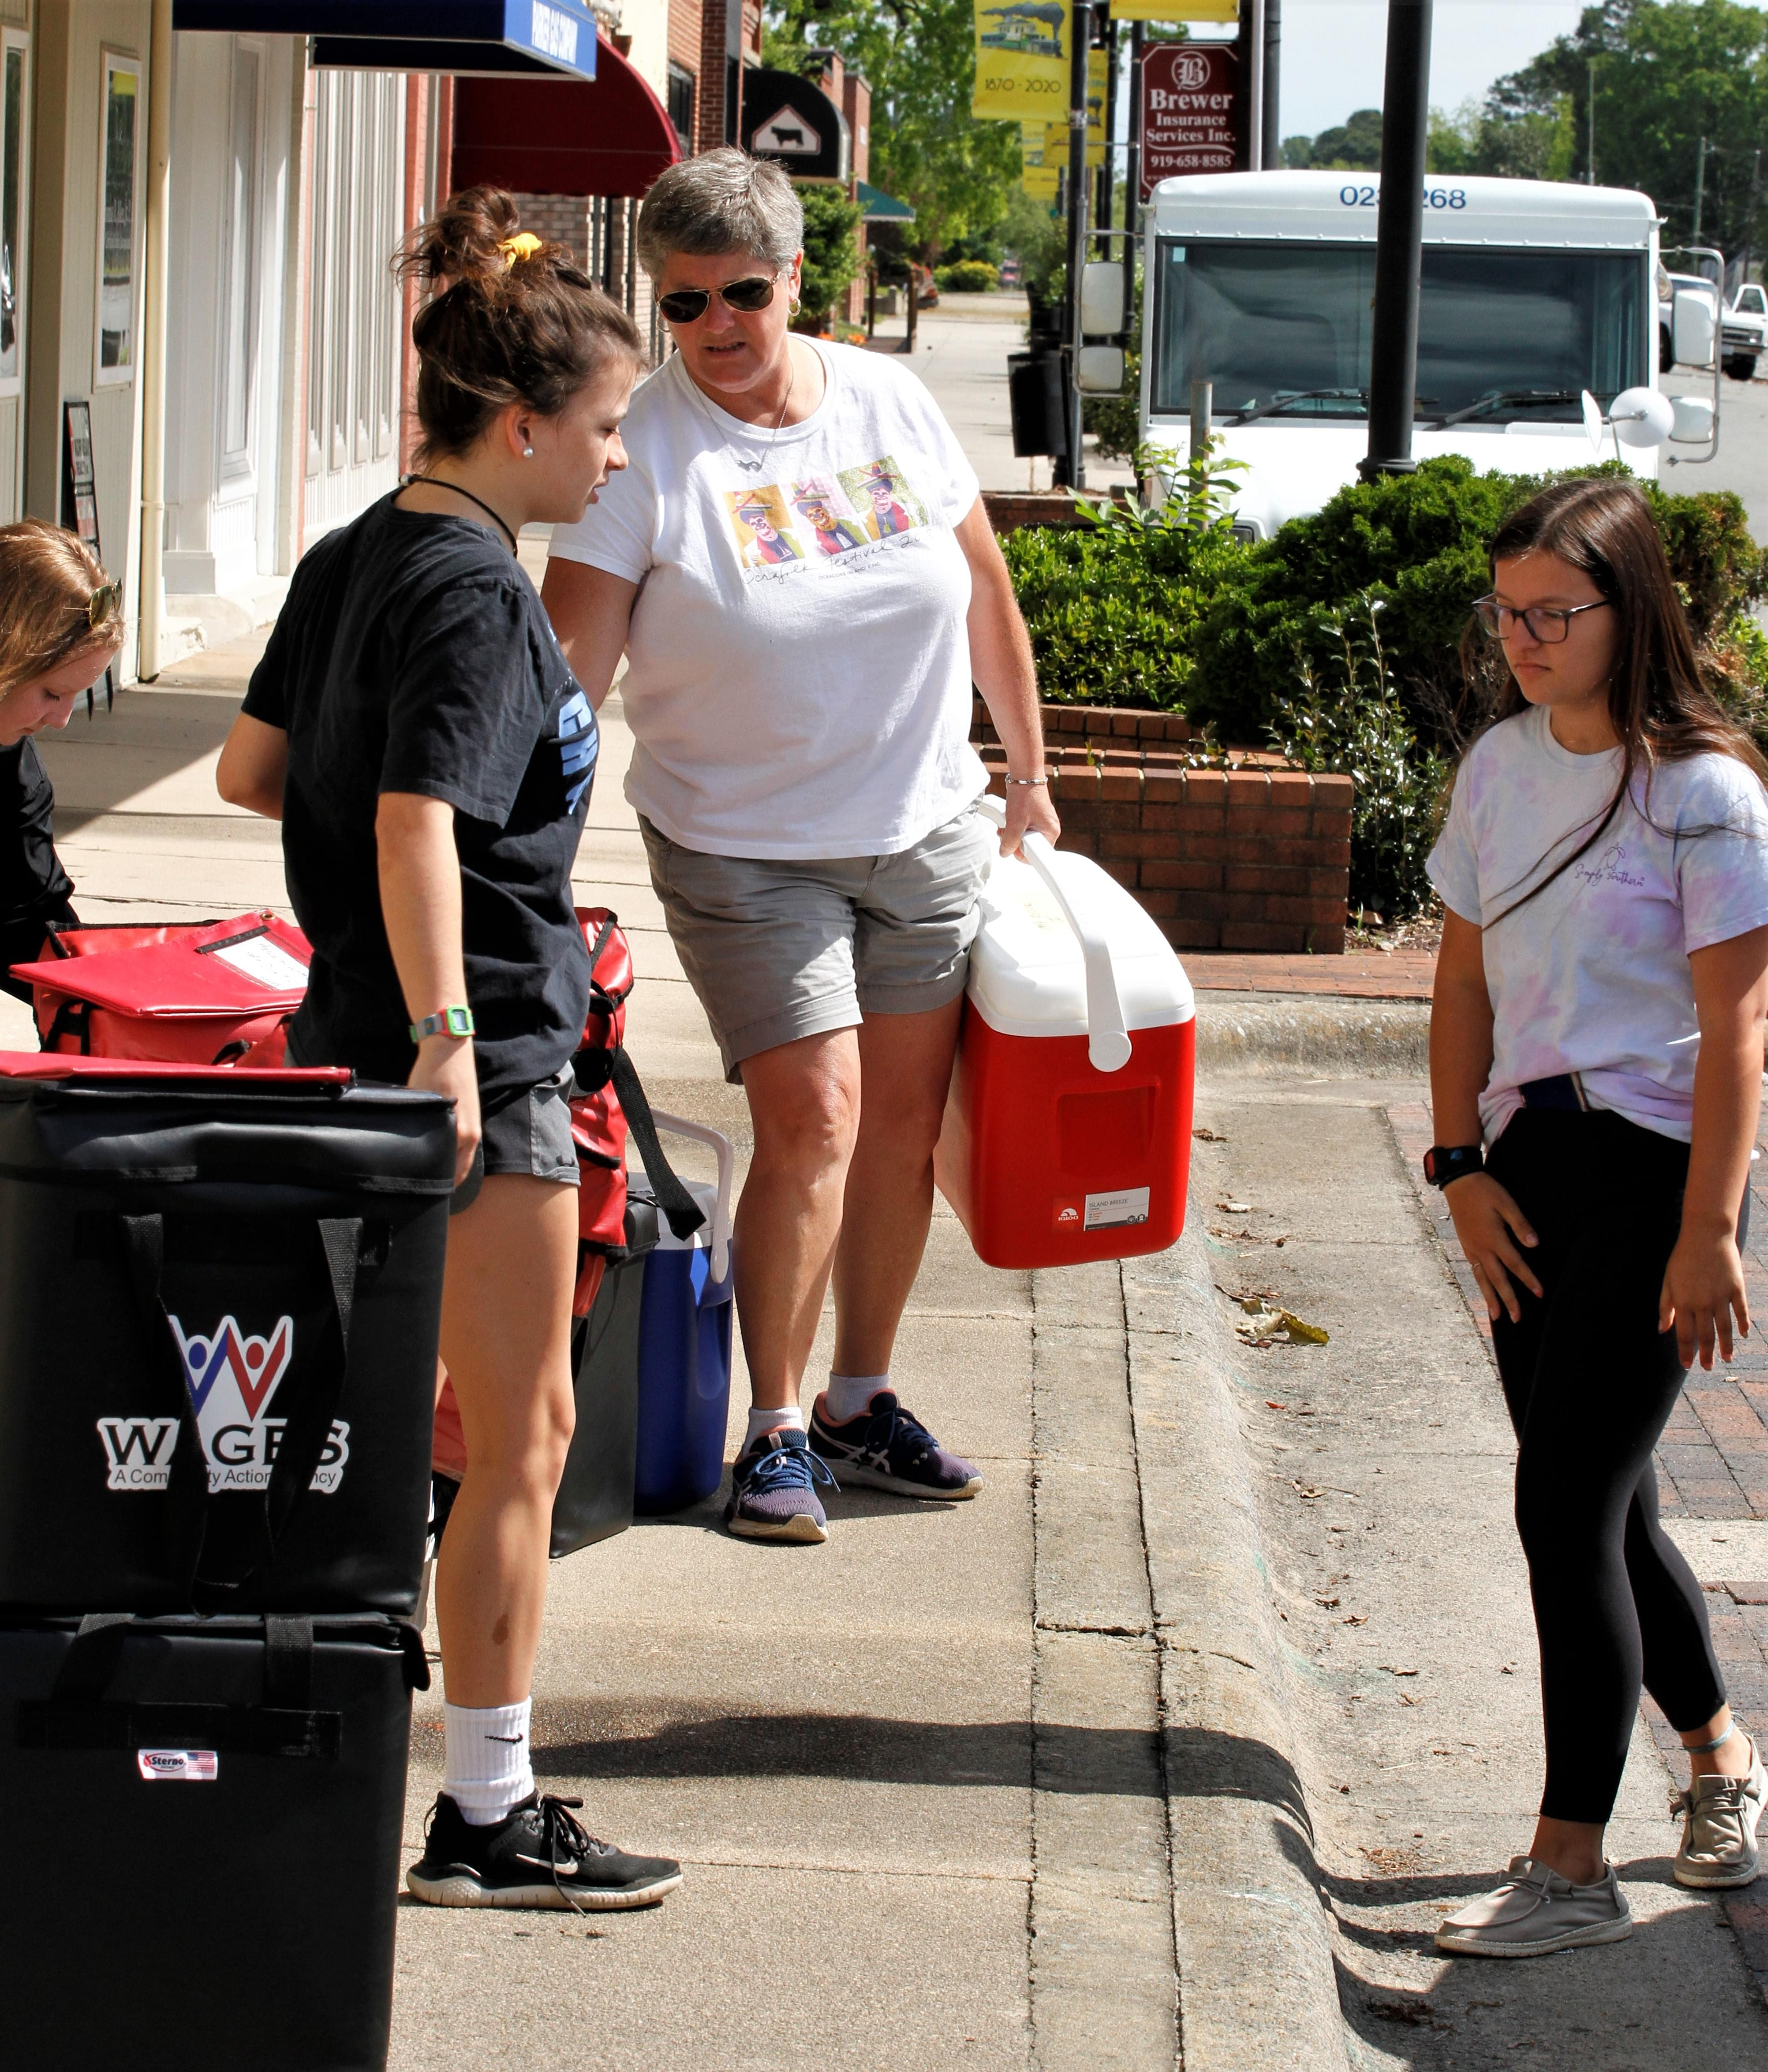 Mt. Olive Chamber Helps Deliver Meals (PHOTO GALLERY)